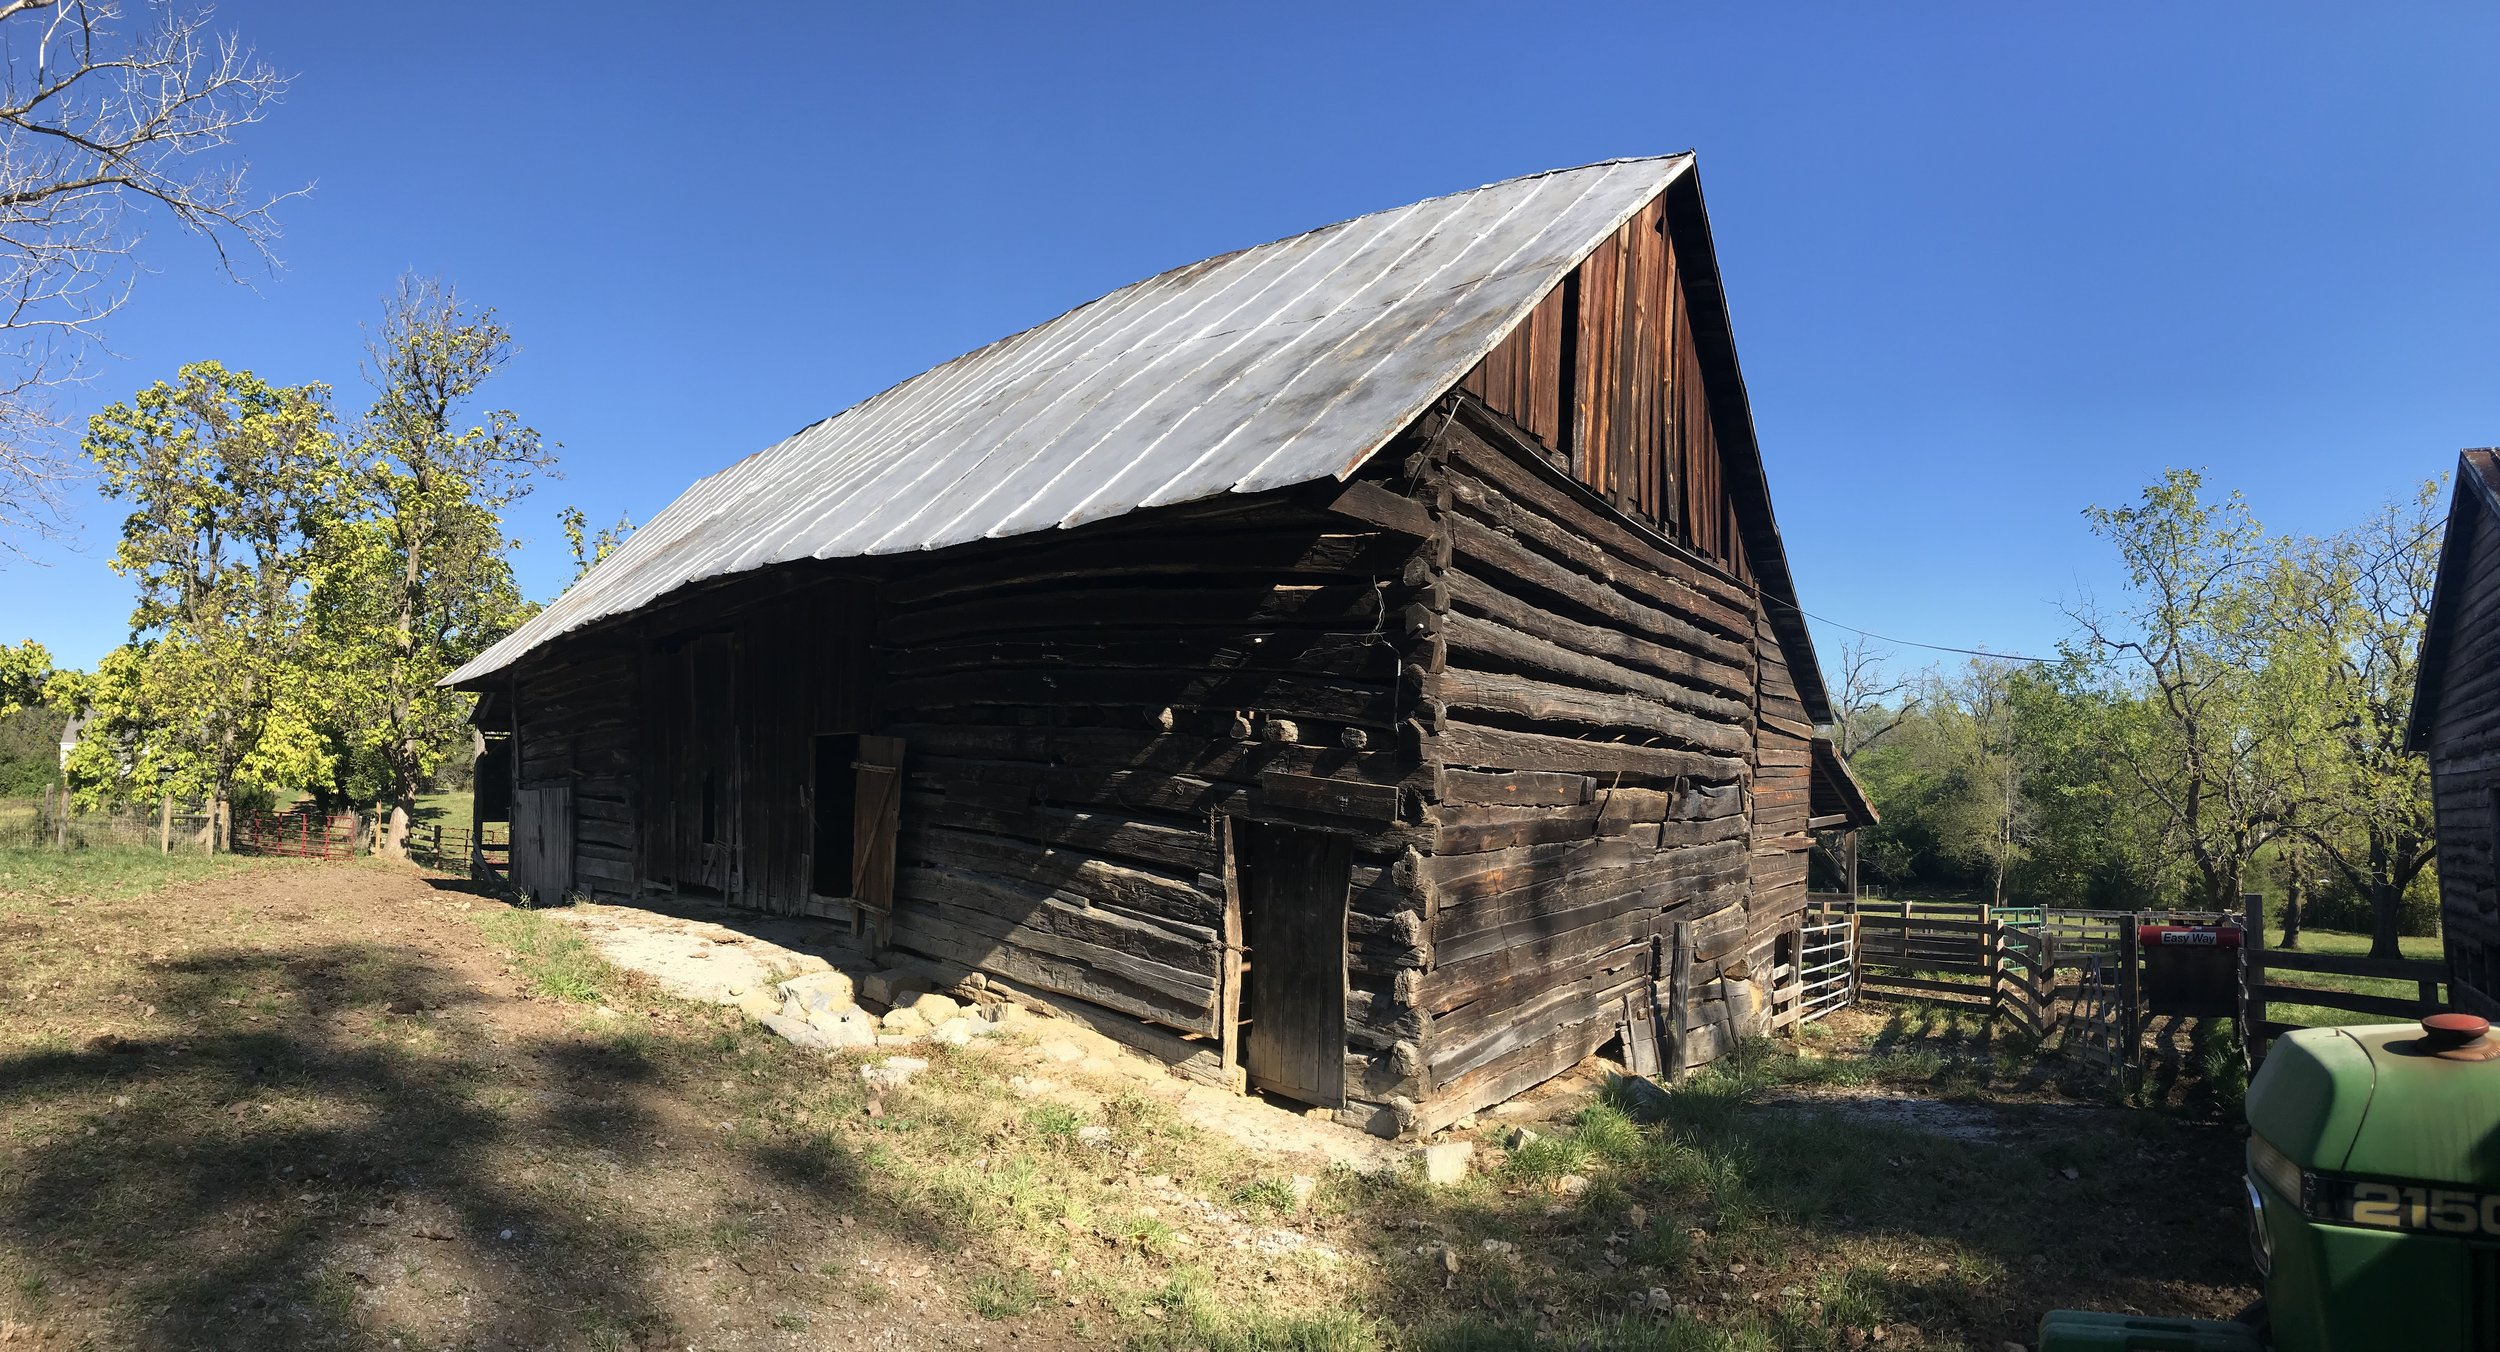 An amazing PRE-REVOLUTIONARY WAR barn, right here in Shenandoah County!